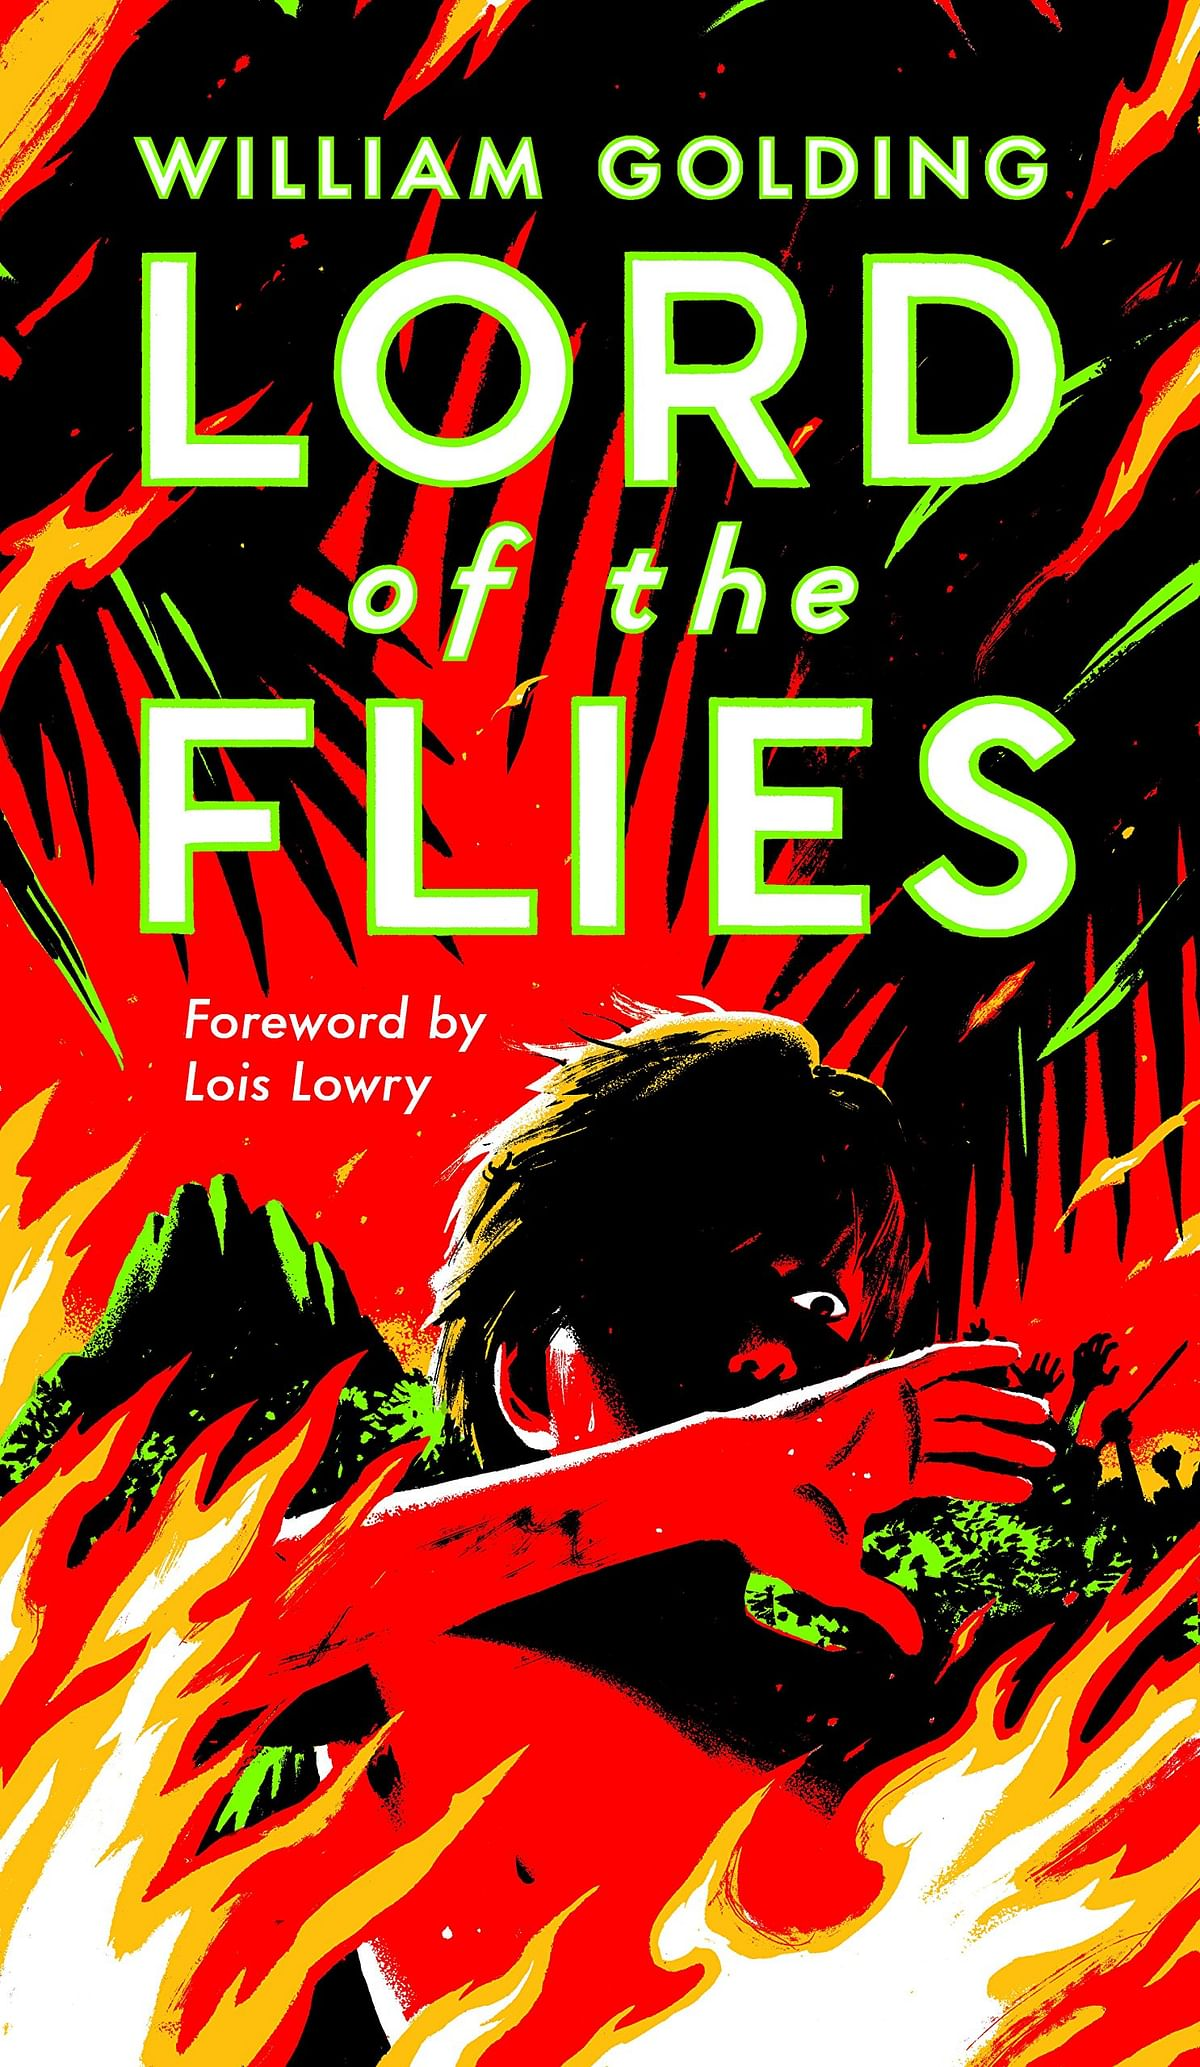 'Lord of the Flies'